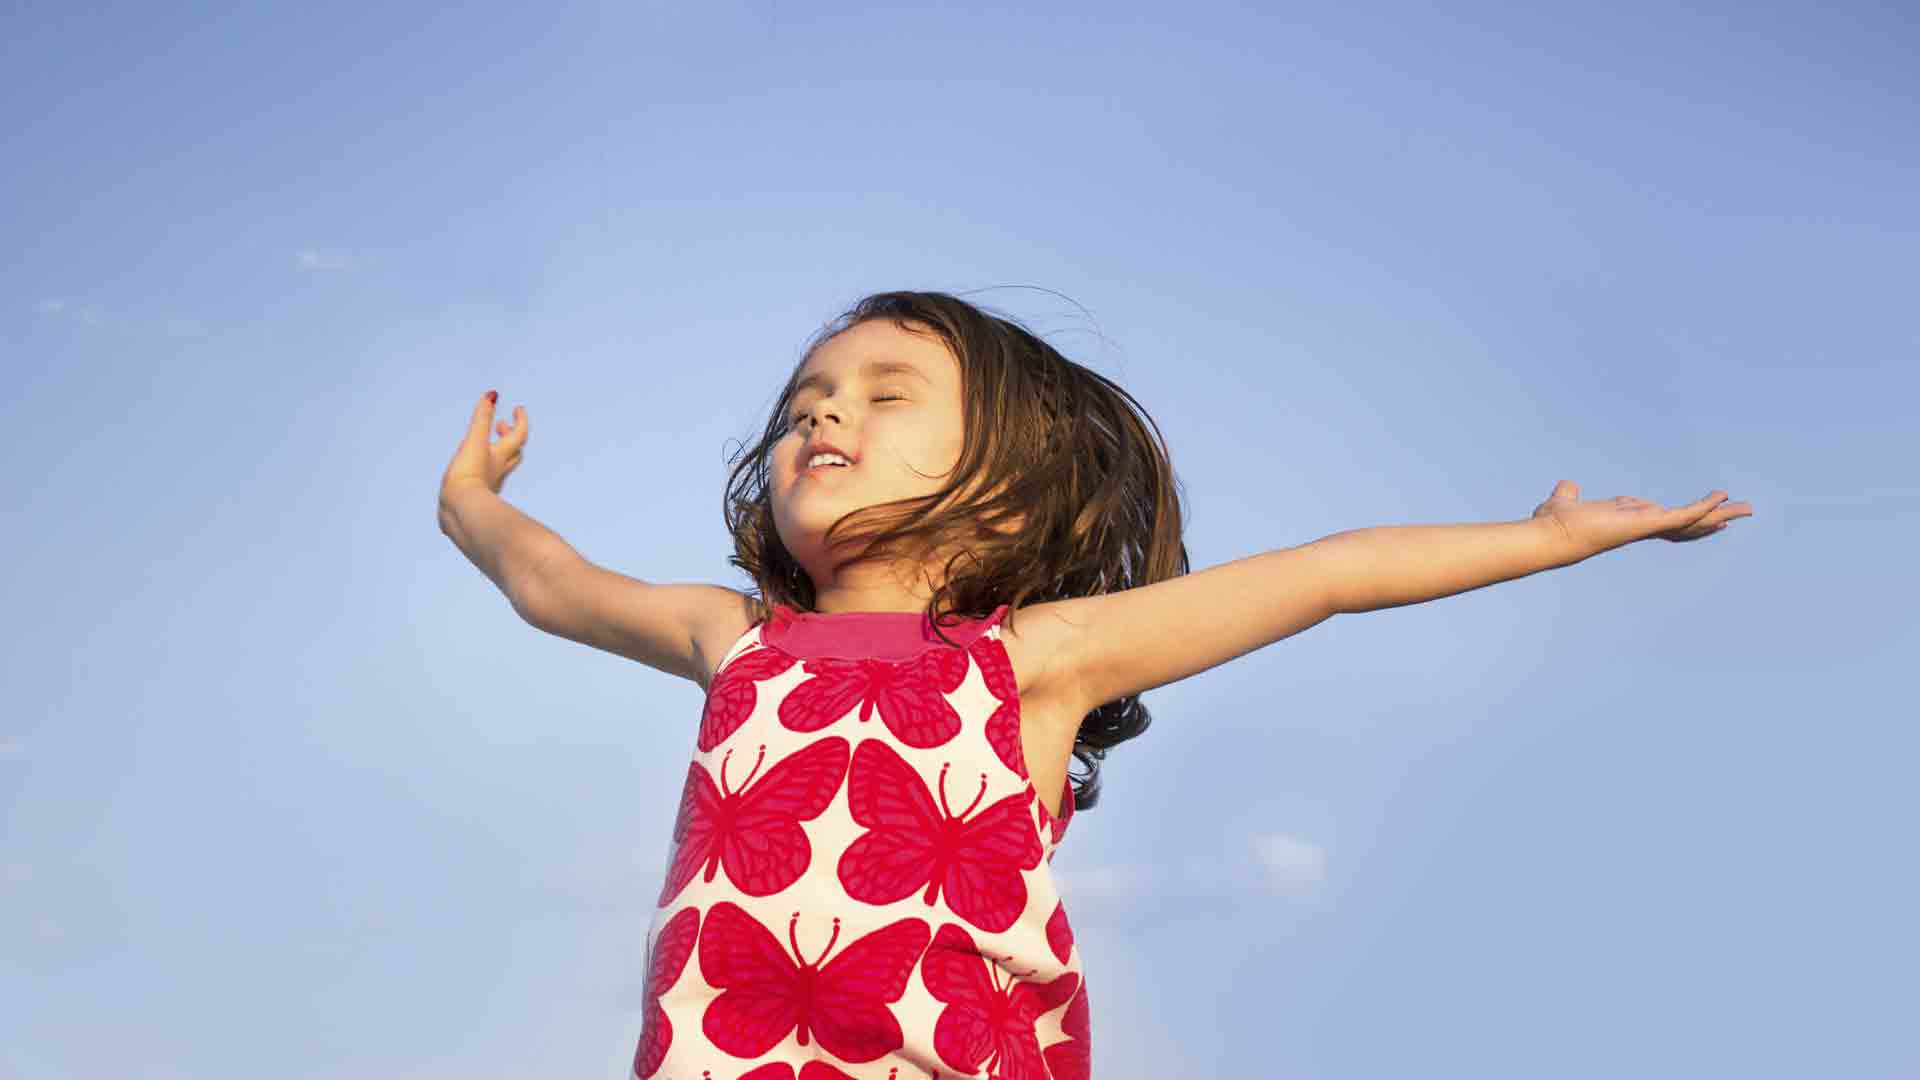 Research-based Strategies to Help Children Develop Self-Control